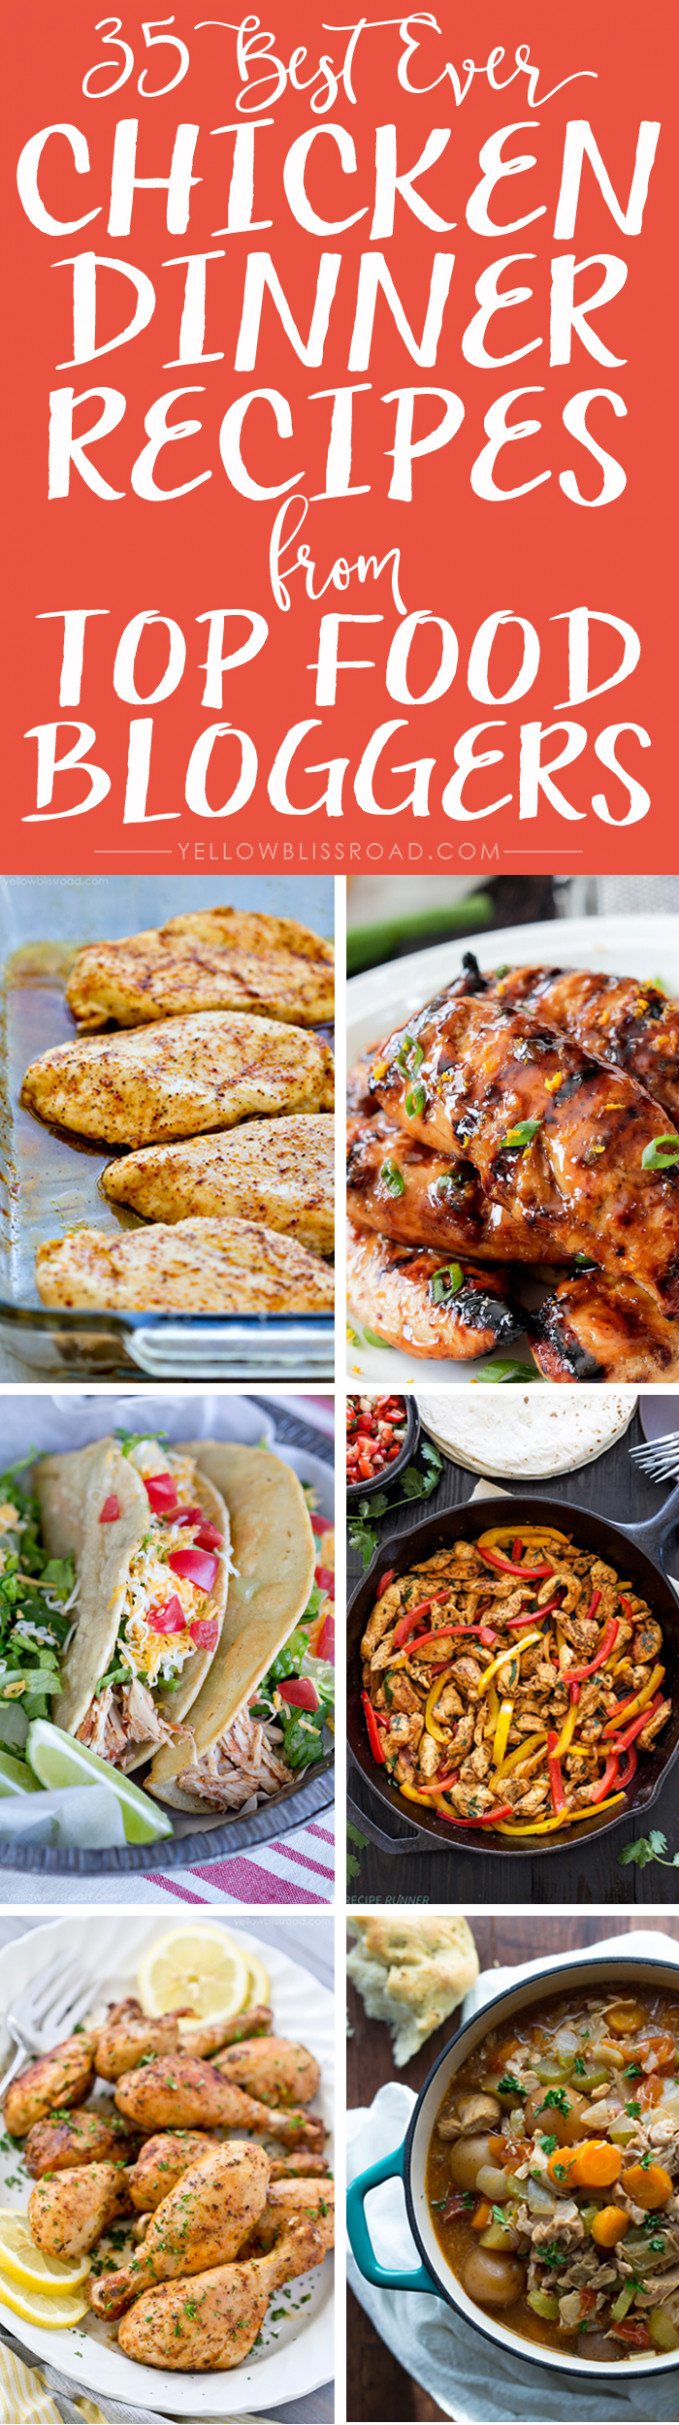 Best Ever Chicken Recipes from Top Food Bloggers ..